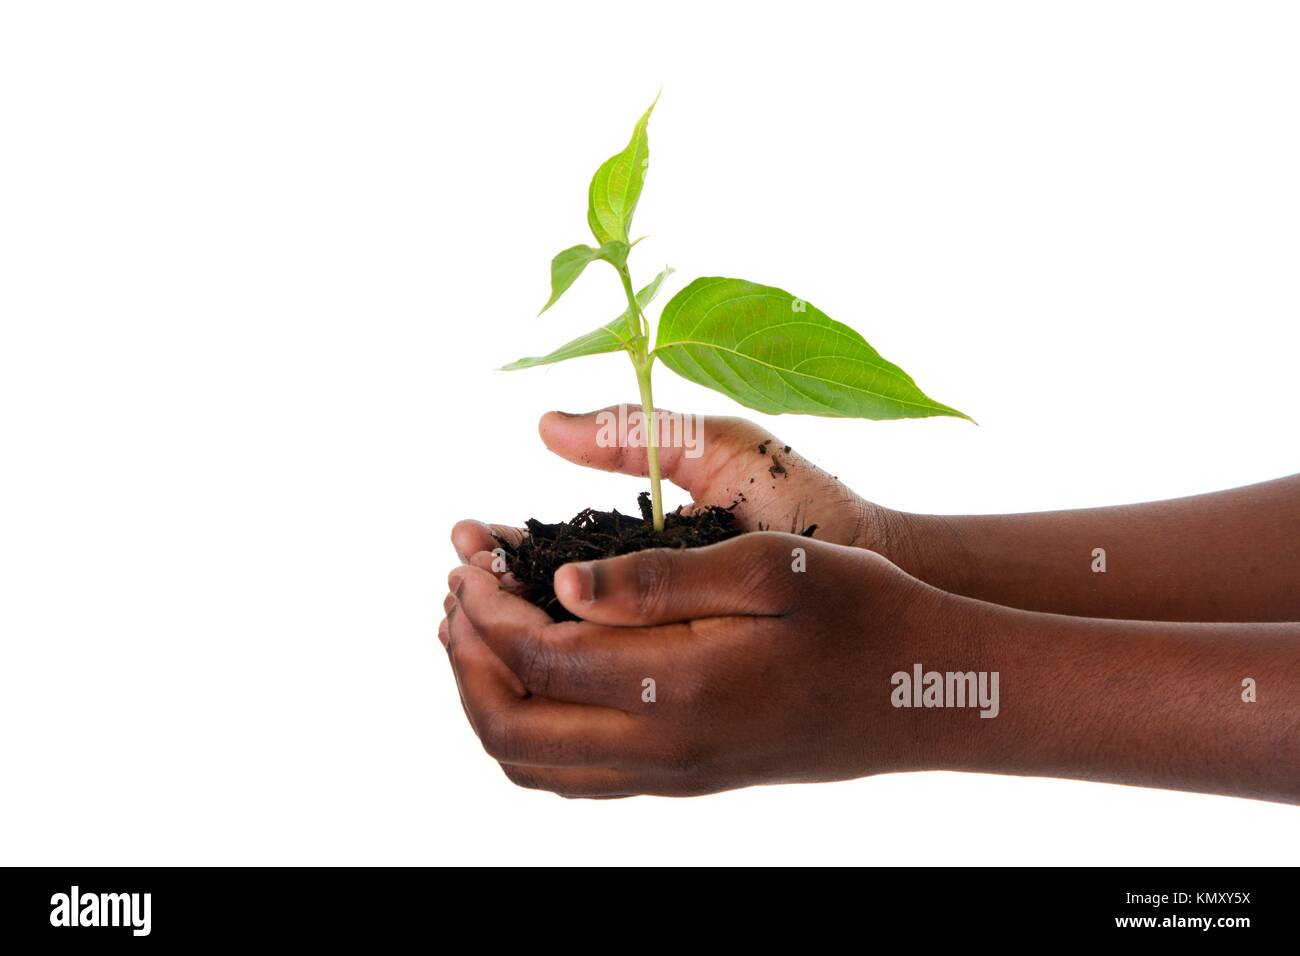 A young new plant growing from palm in hands of African child, isolated  Drought on Earth concept - Stock Image